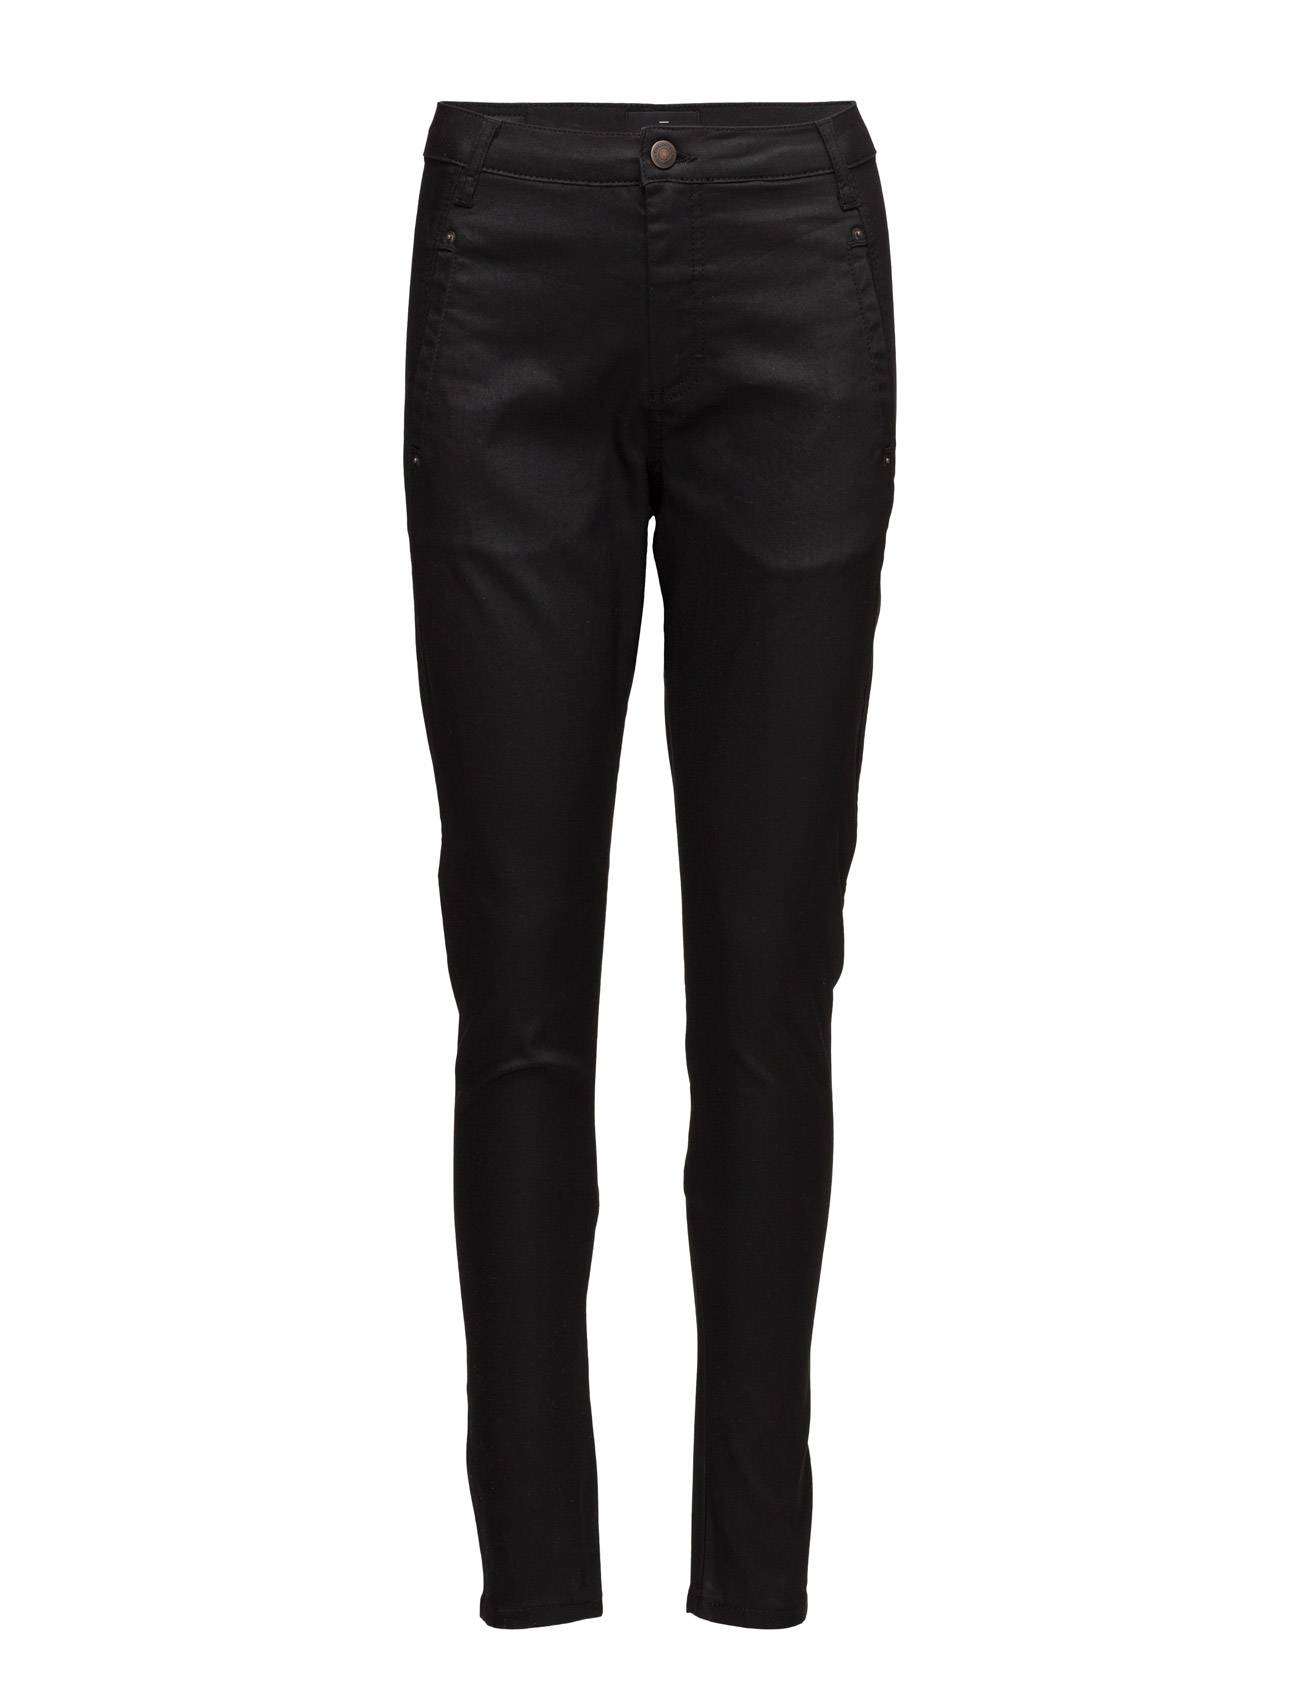 FIVEUNITS Jolie 274 Black Coated, Jeans